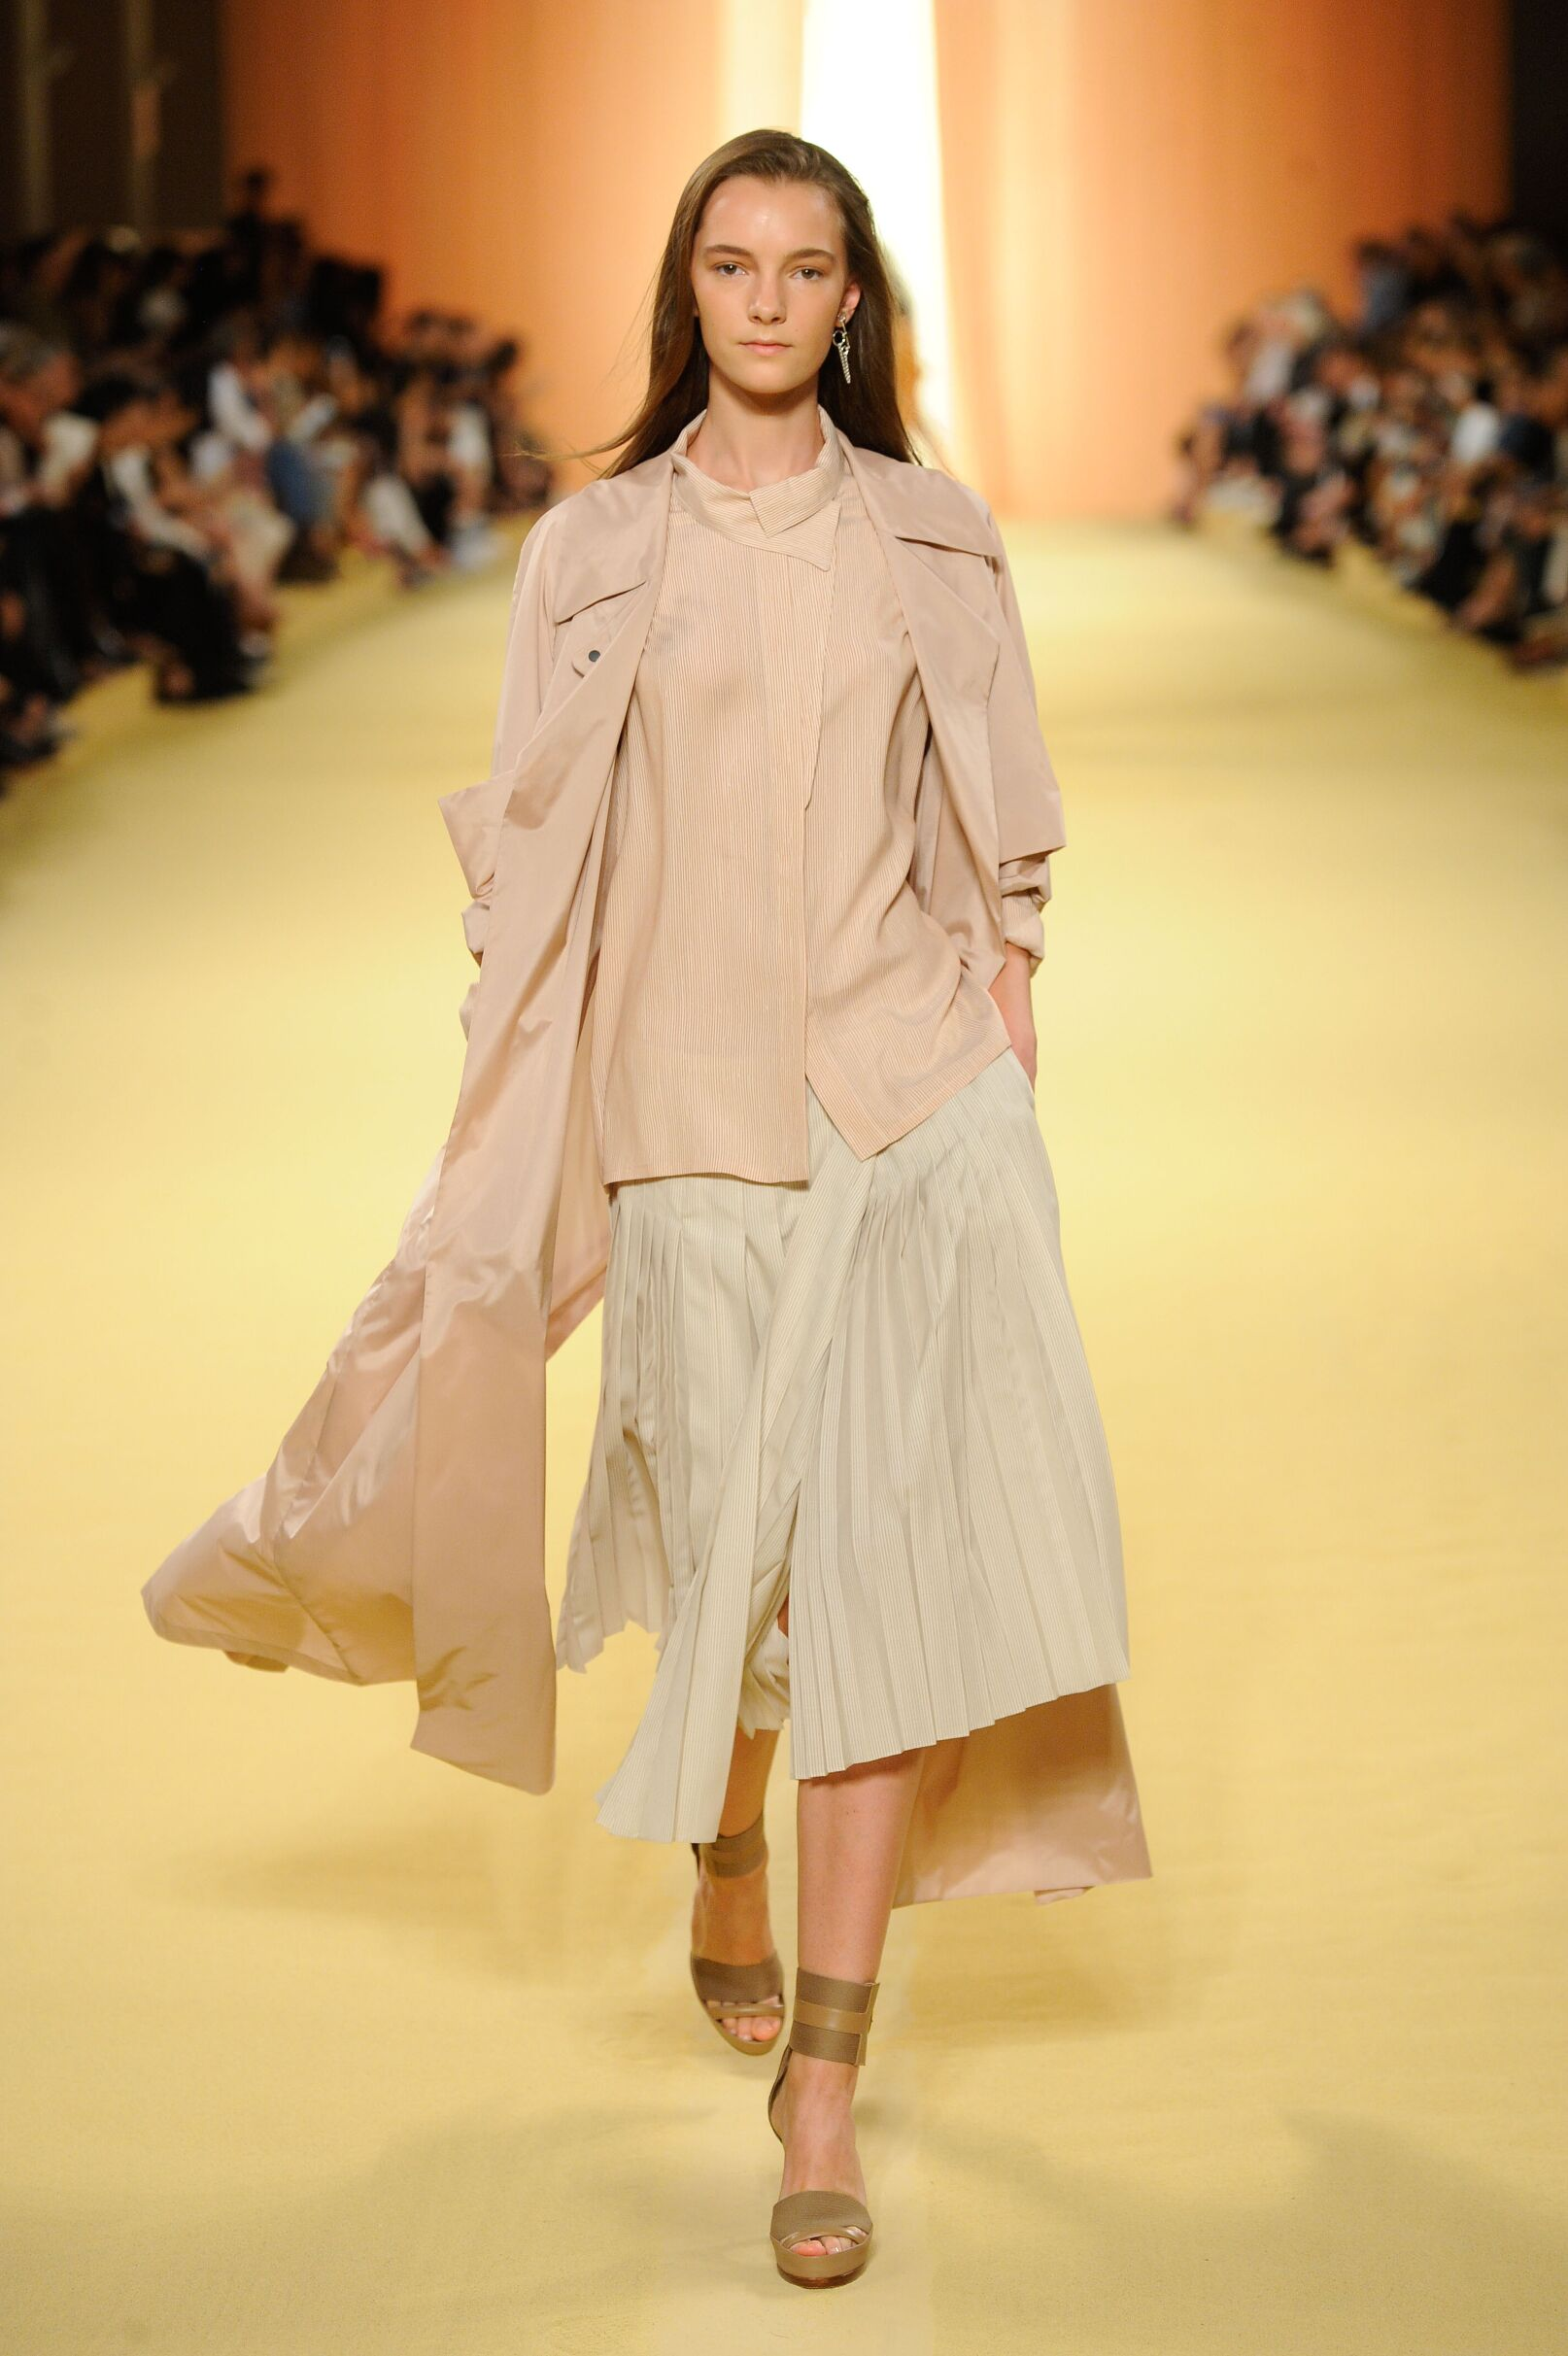 Catwalk Hermès Woman Fashion Show Summer 2015